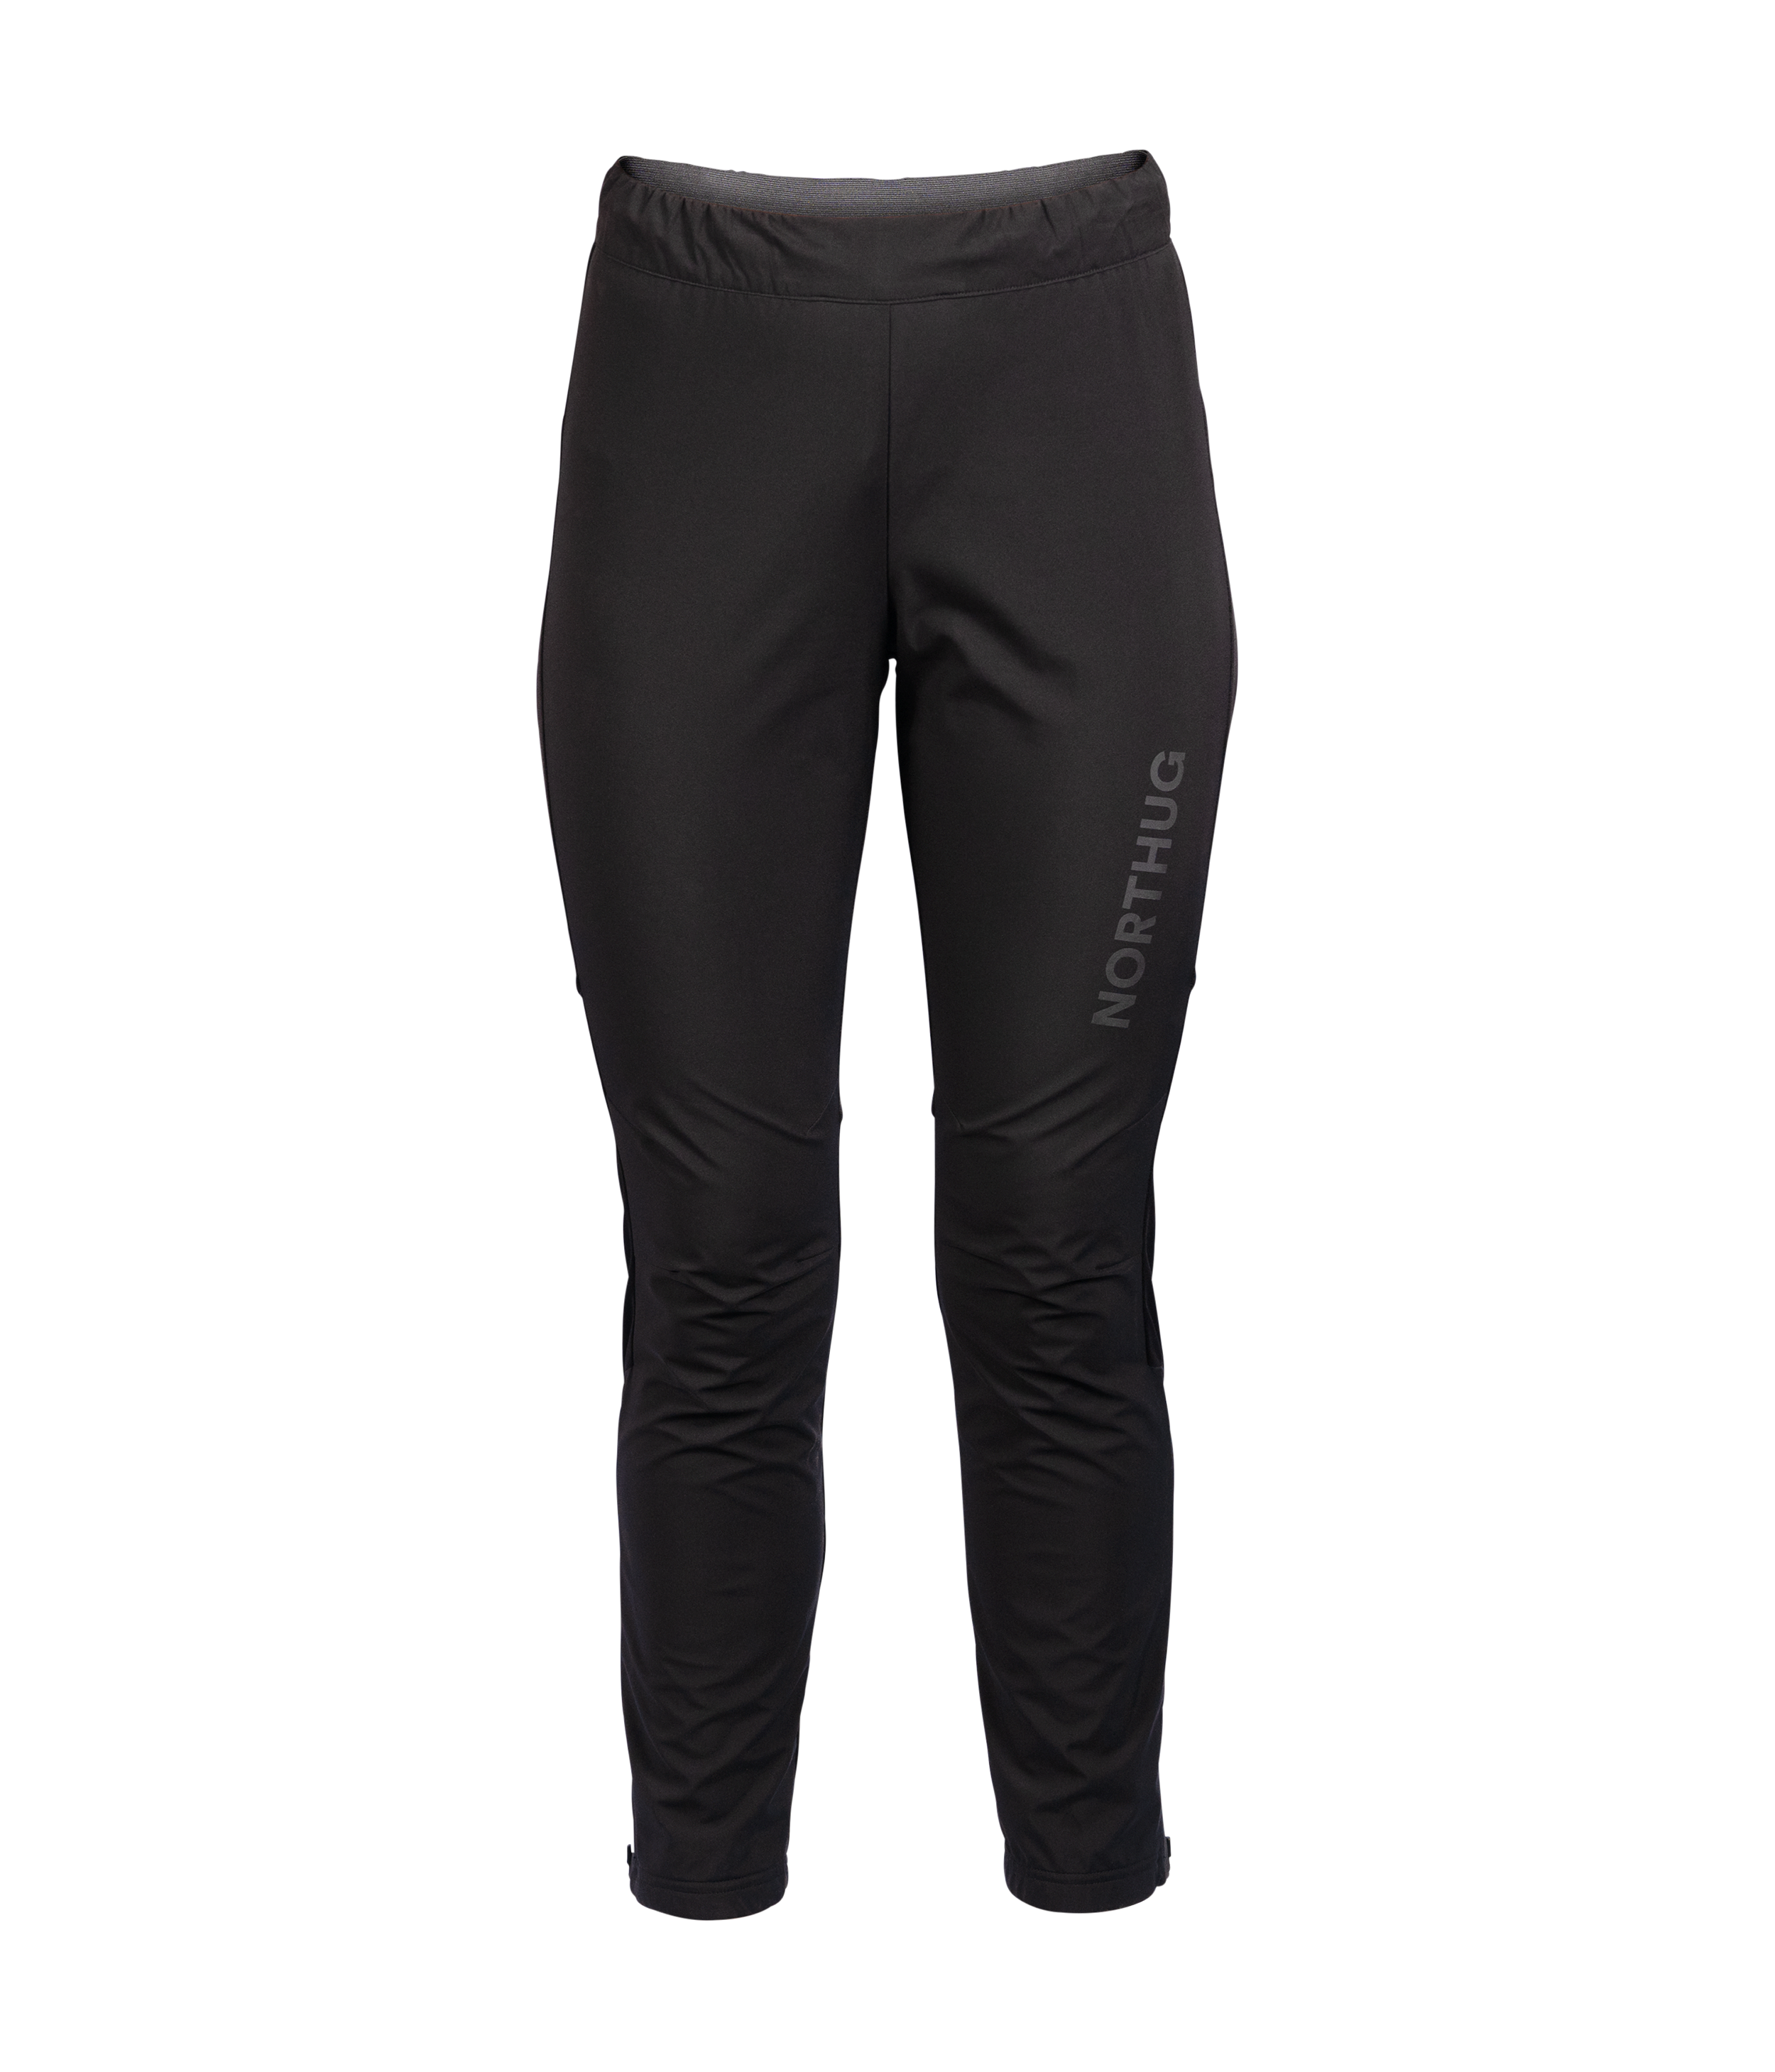 Northug La Bresse Tech Pants, W's